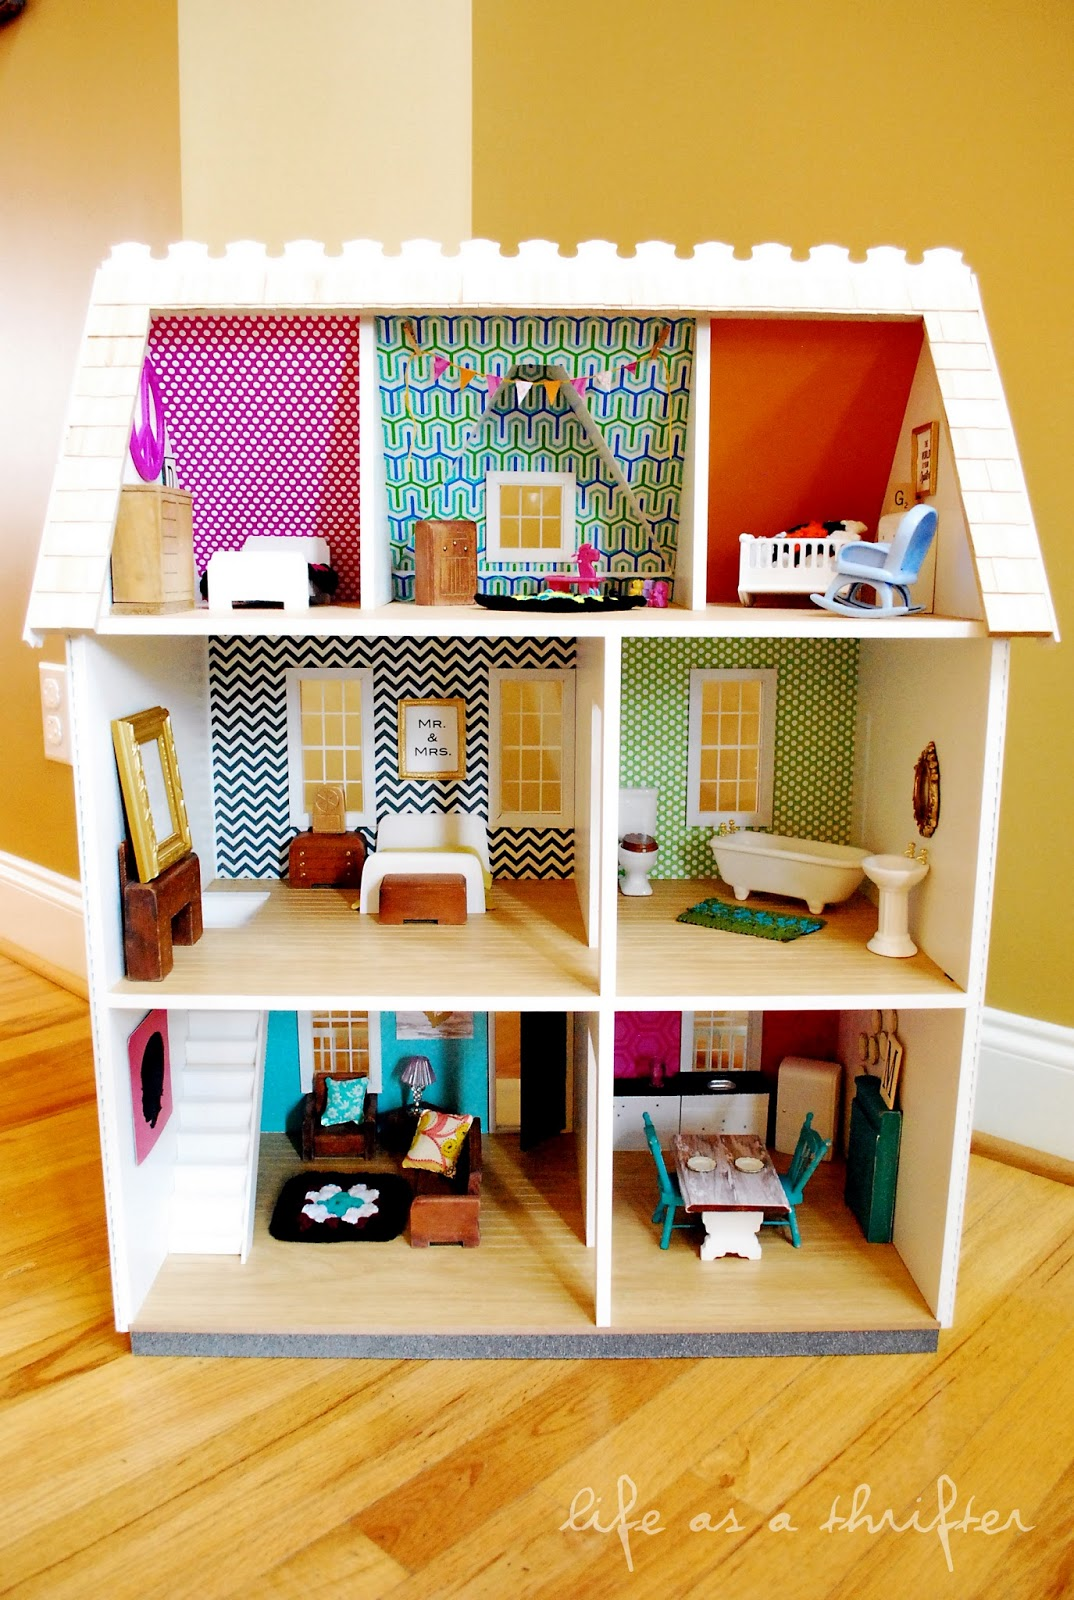 Life as a thrifter dollhouse details diy wall art Make my home design